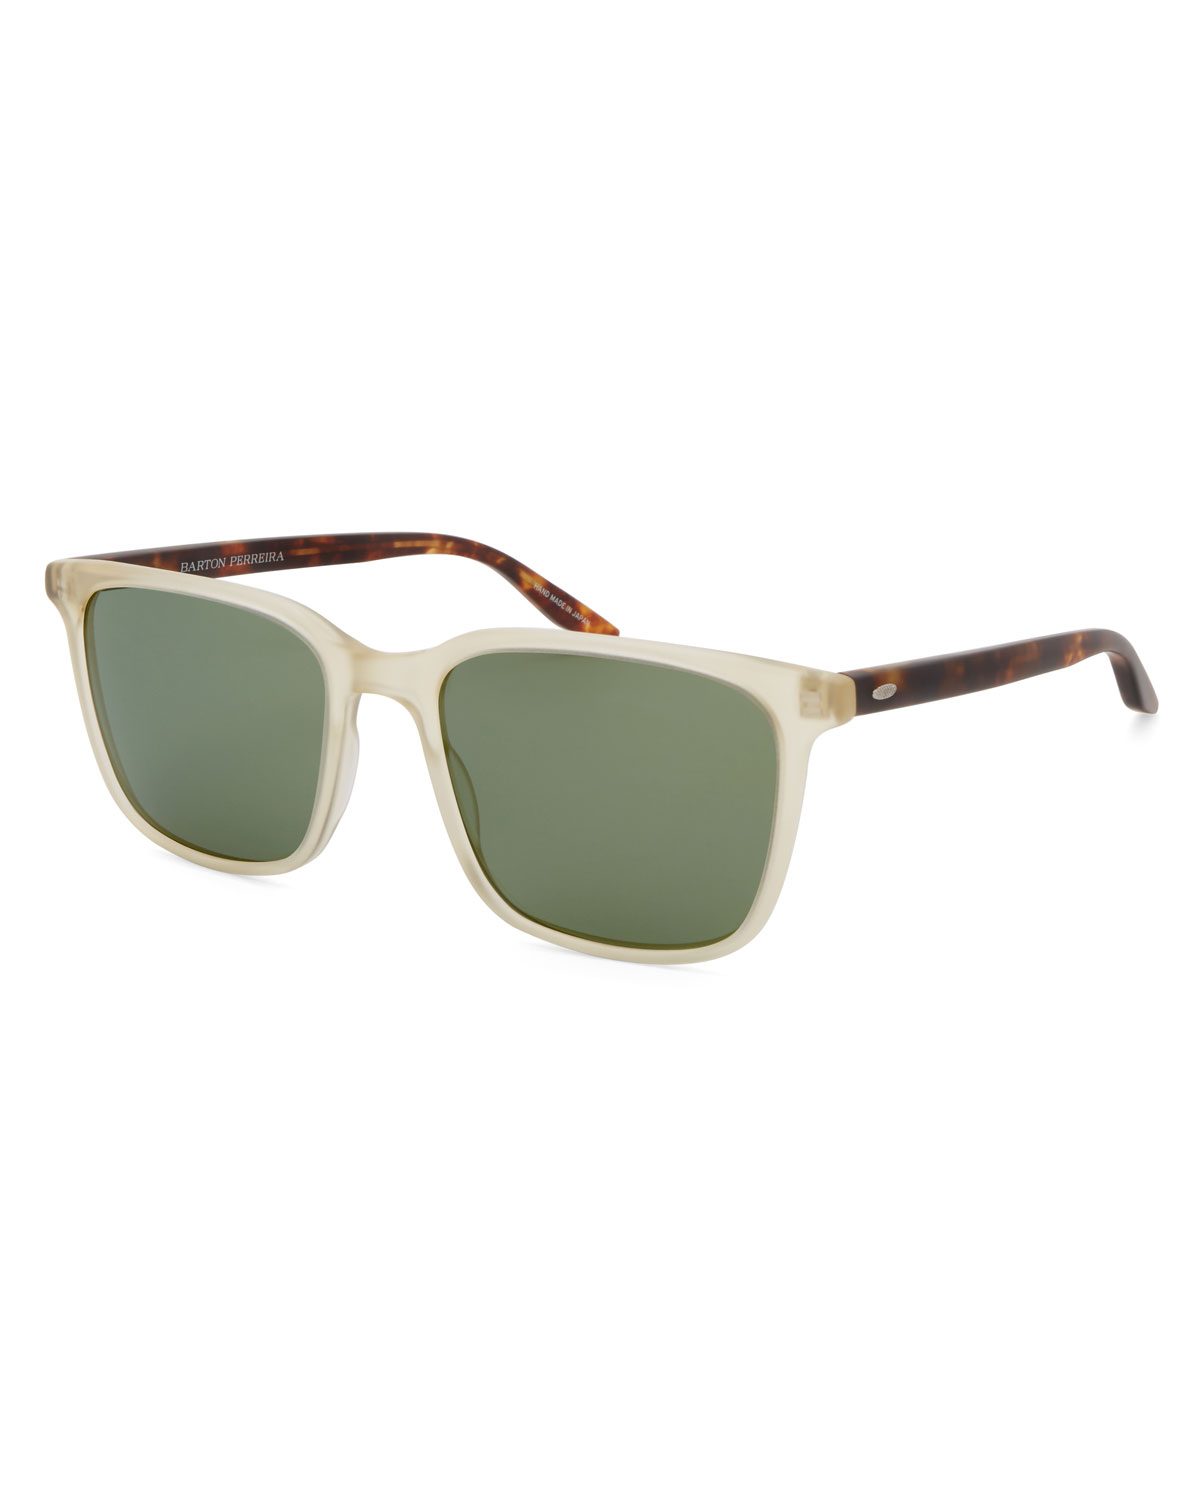 517d5581210 Barton Perreira Men s Heptone Two-Tone Acetate Sunglasses In White Brown